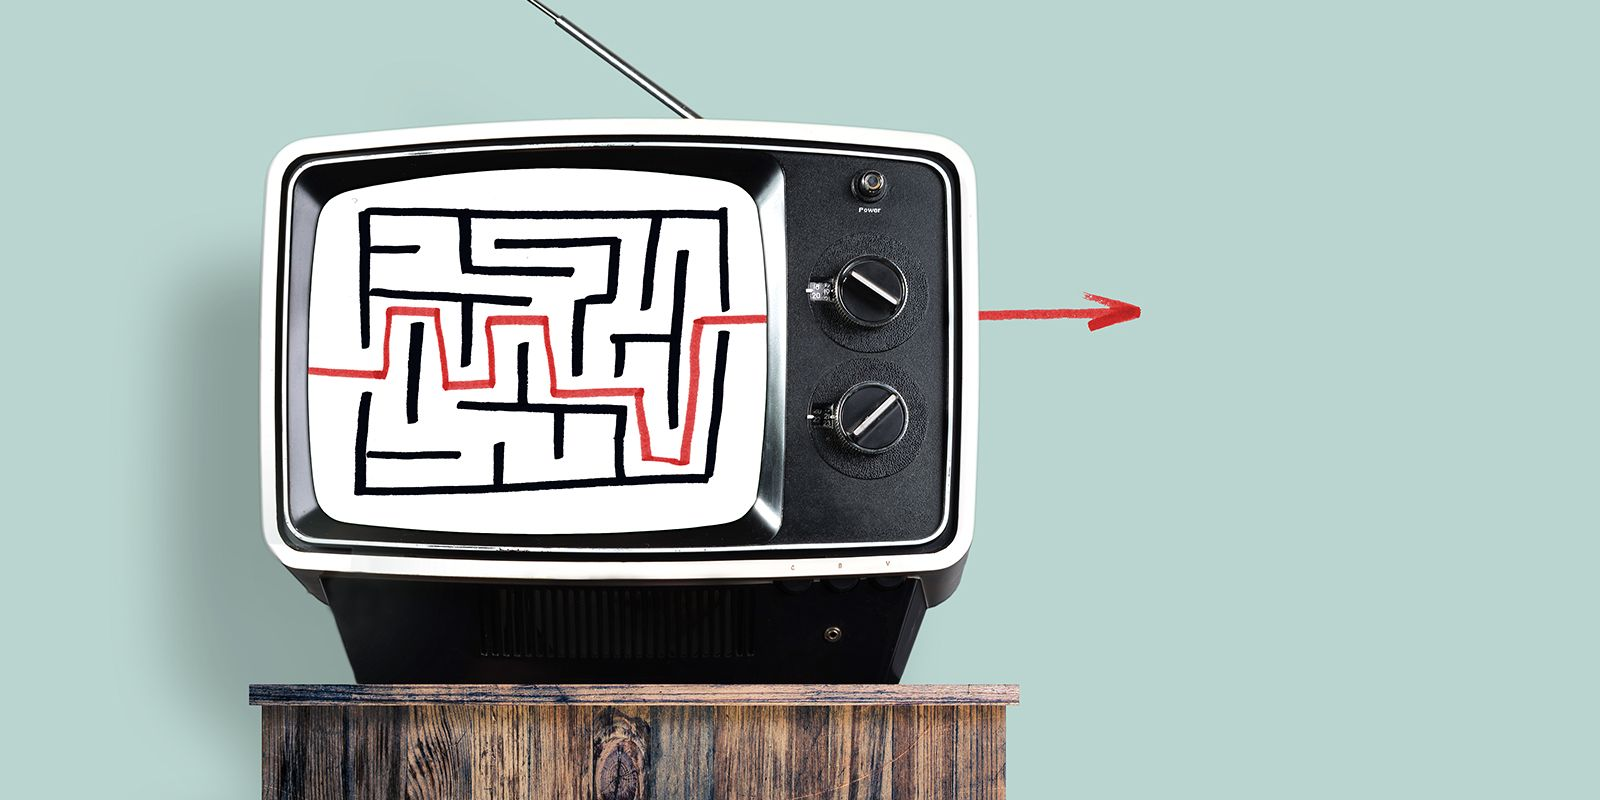 Old tv showing a labyrinth on white screen. A red arrow is getting out of the labyrinth past the tv on the video SEO services page.